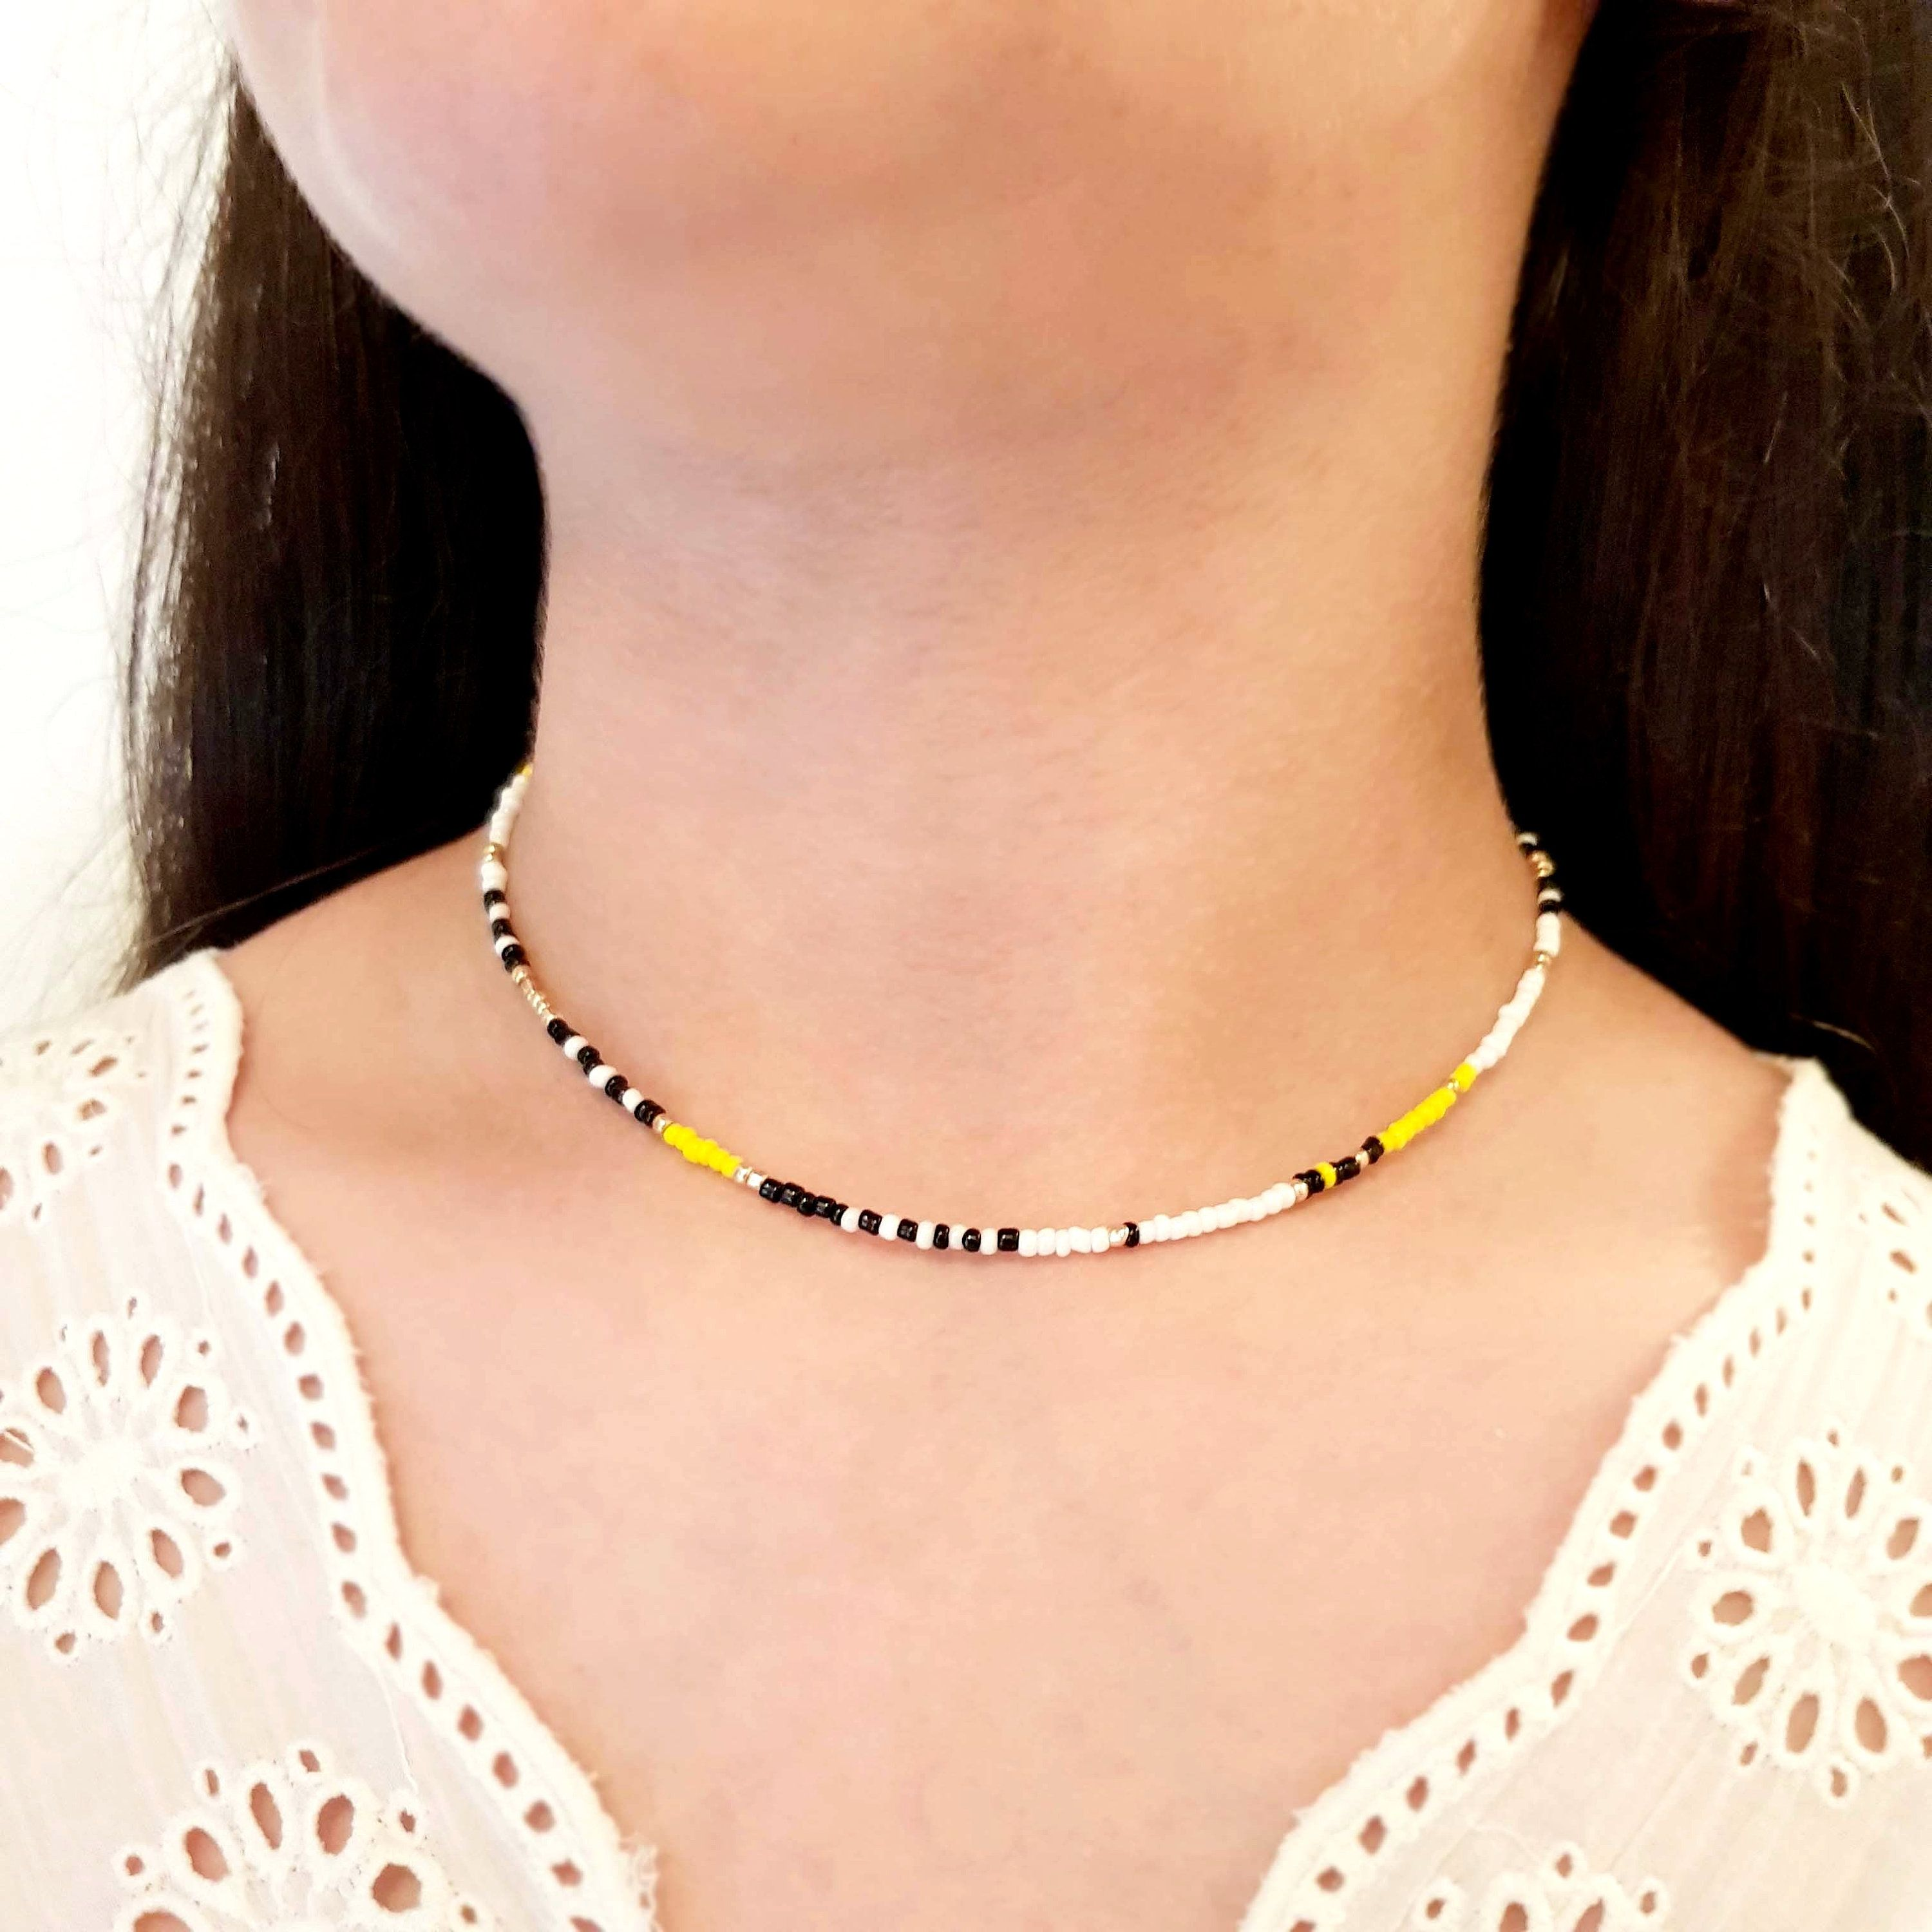 Glass Bead Necklace Beaded Boho Necklace Short Seed Bead Necklace Black or White Seed Bead Necklace Gold Cowrie Shell Necklace